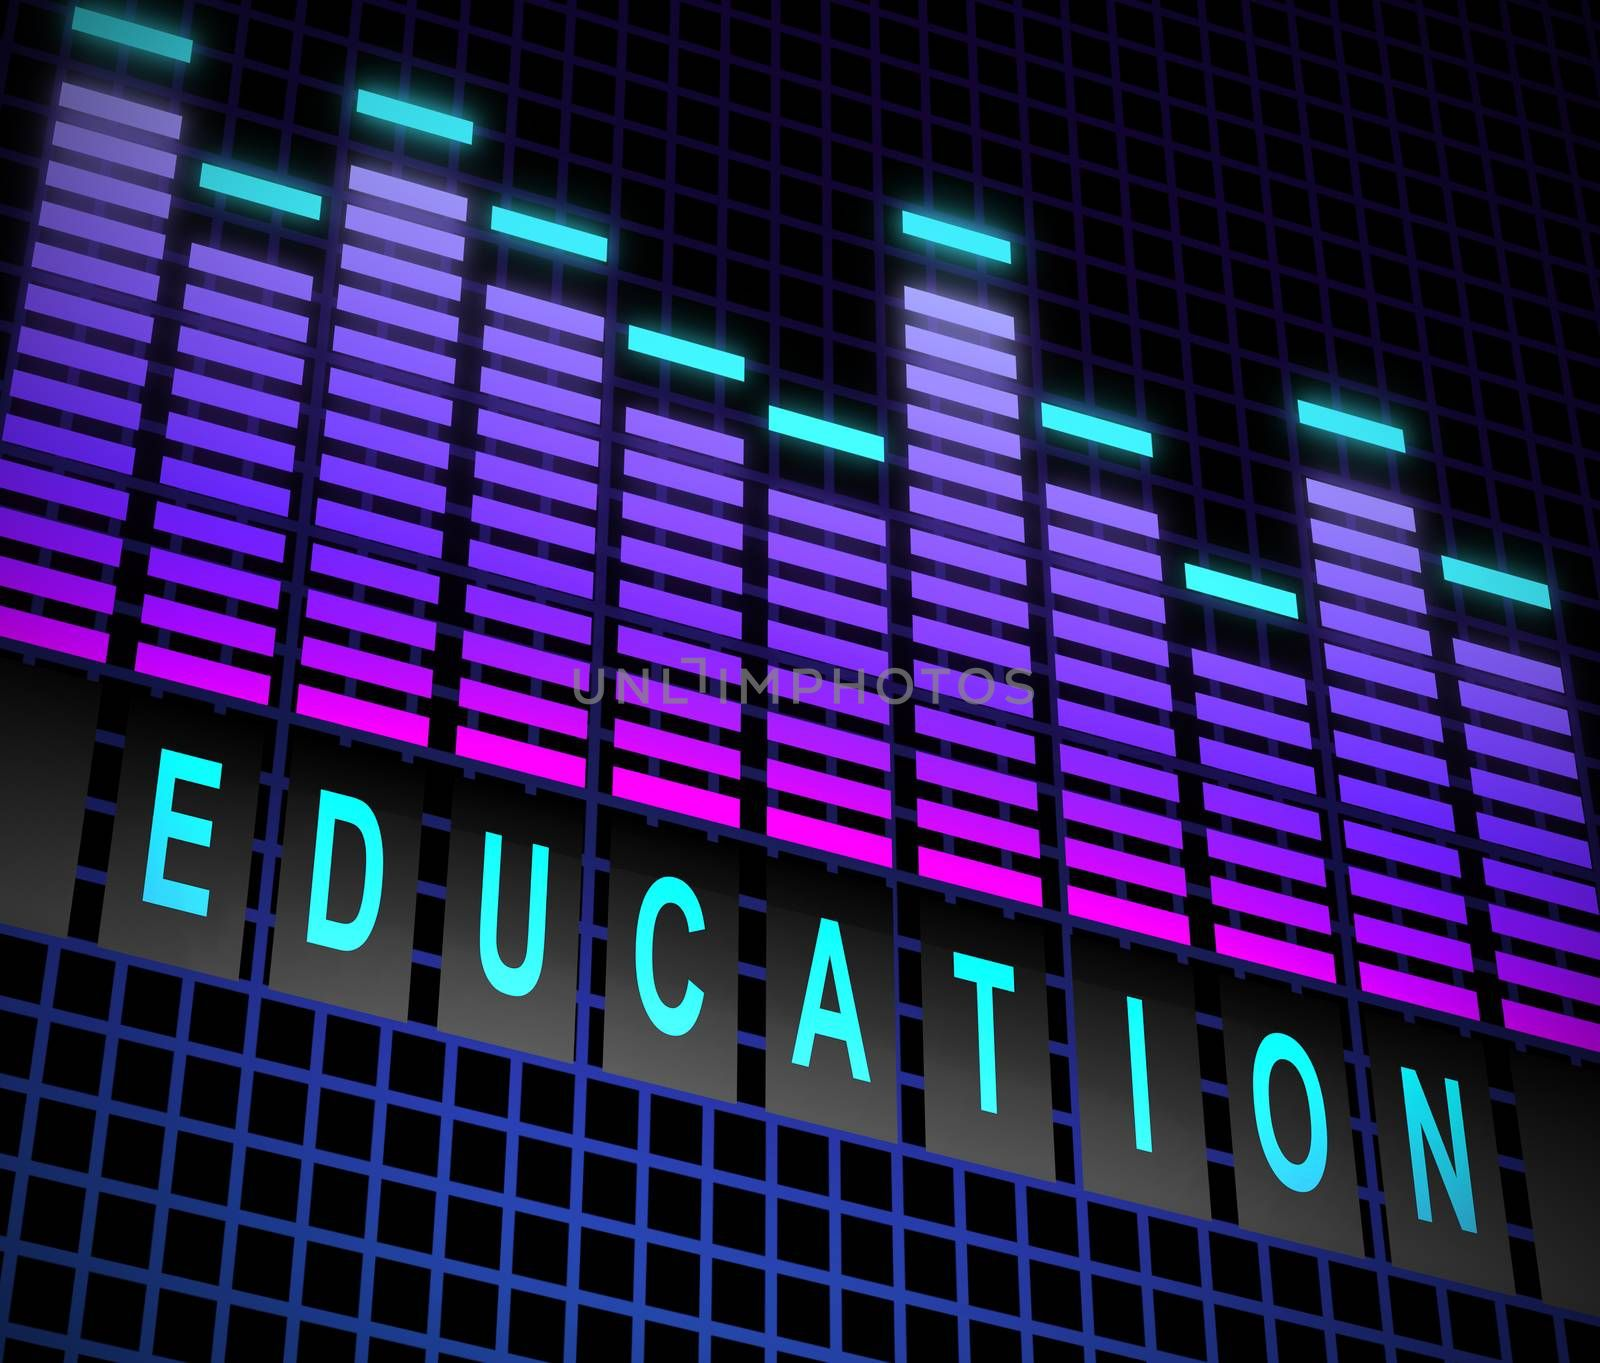 Illustration depicting graphic equalizer levels with an education concept.